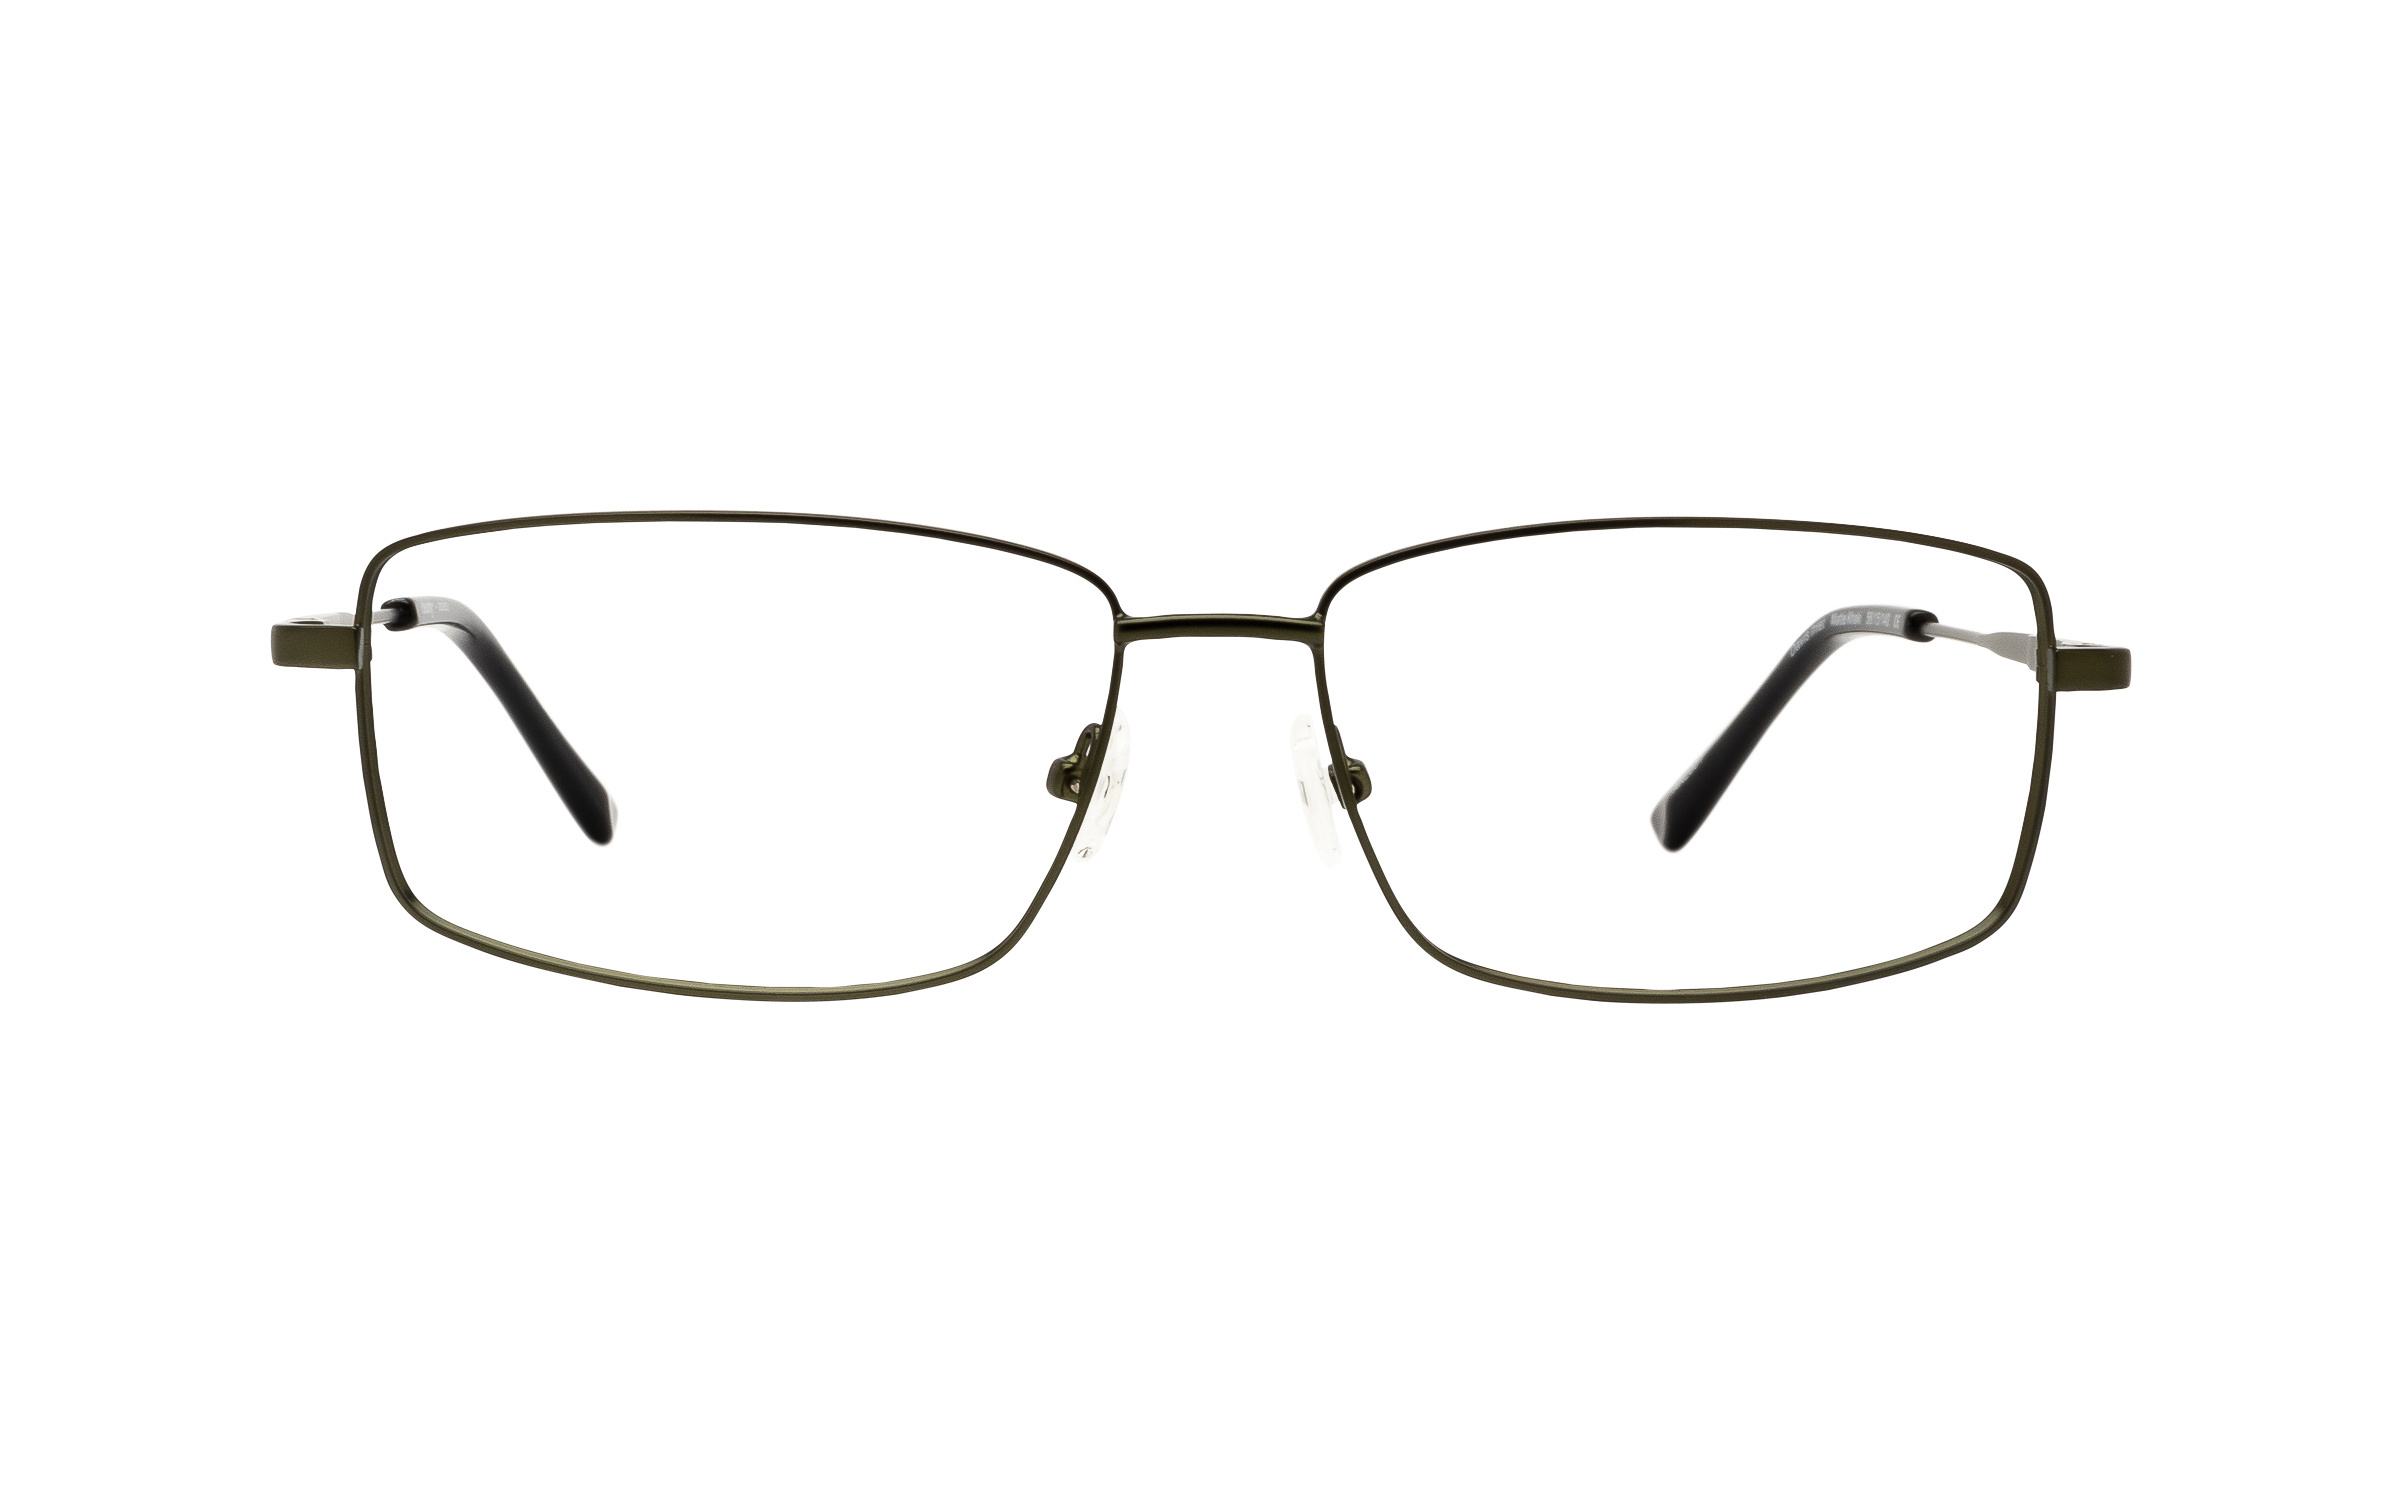 http://www.coastal.com/ - Clearly Basics Davis Inlet CLS059 C03 (58) Eyeglasses and Frame in Matte Khaki Green – Online Coastal